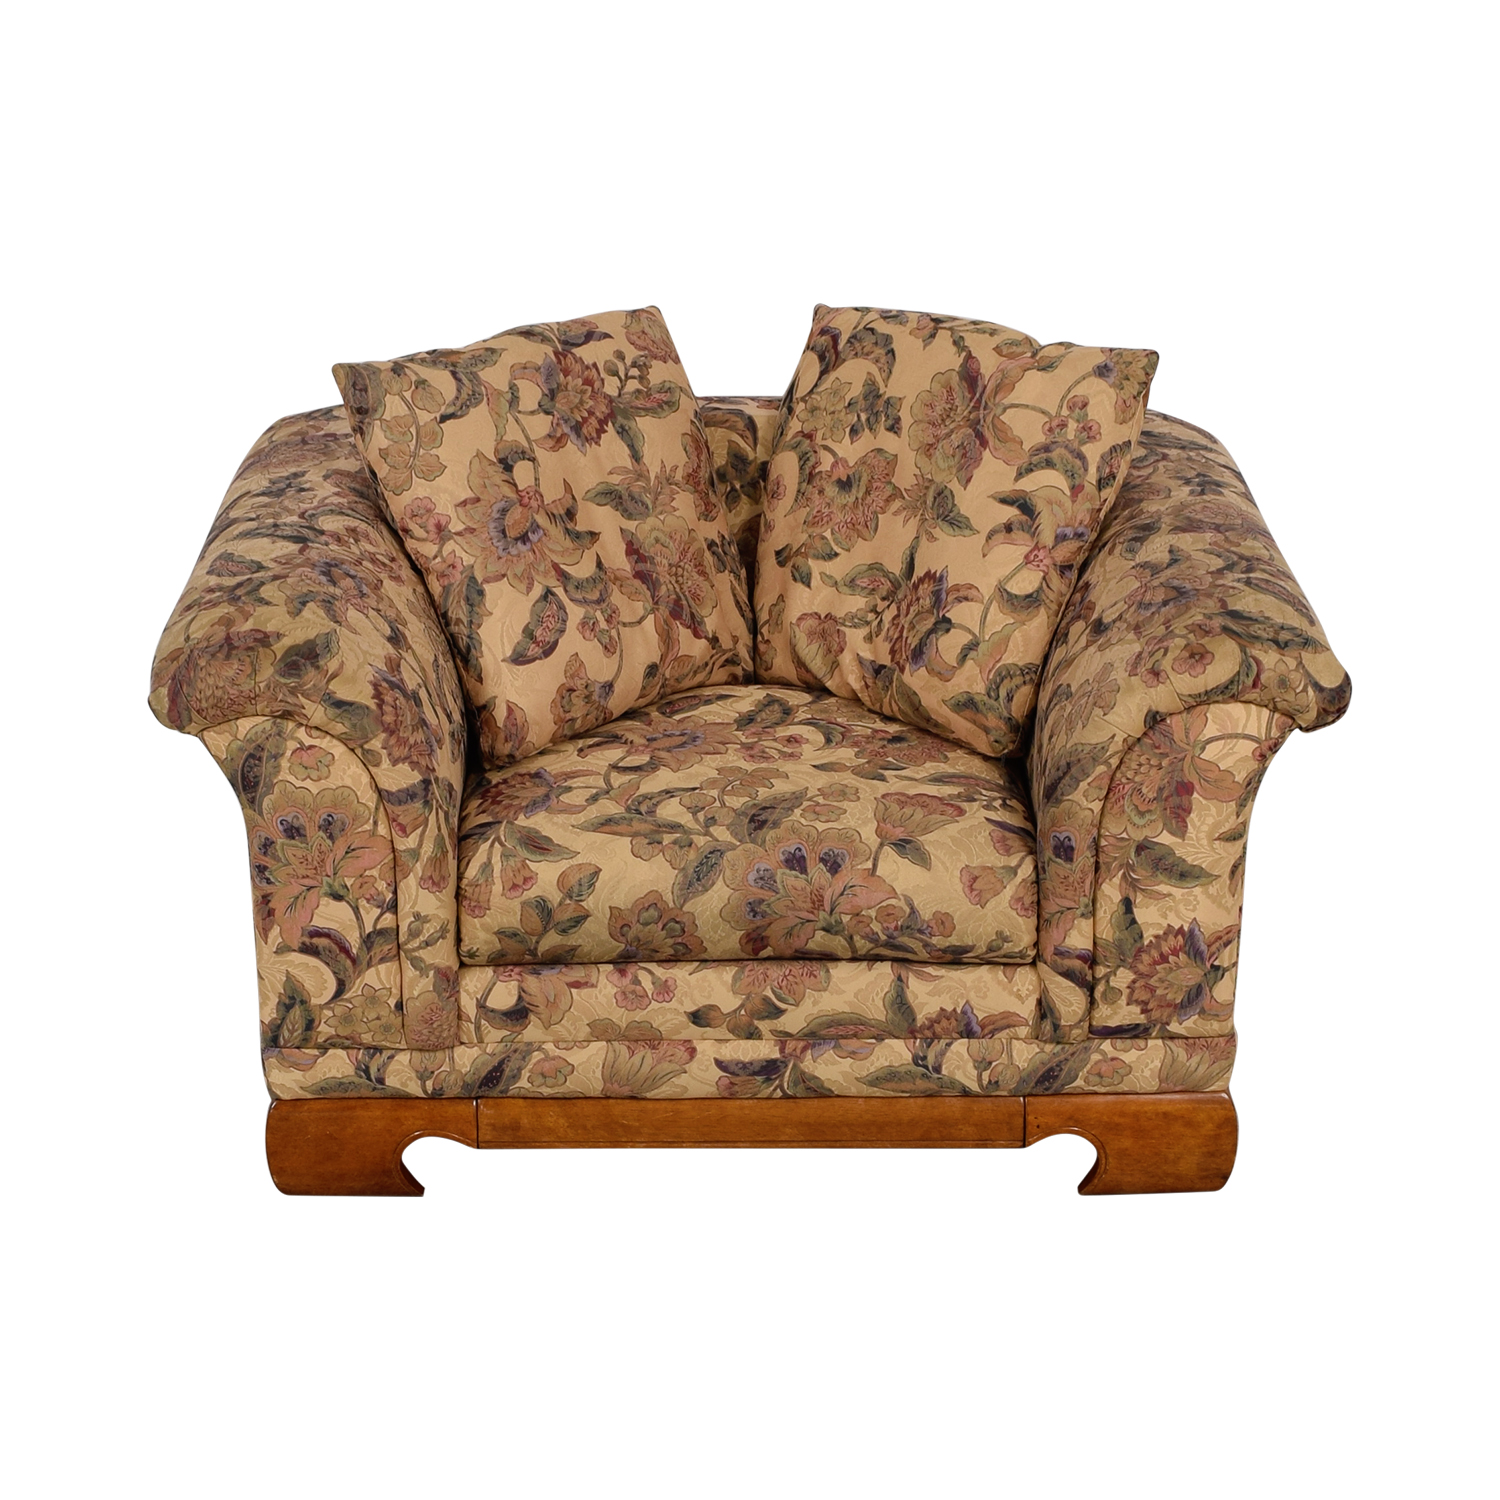 Sealy Furniture Floral Print Accent Chair sale